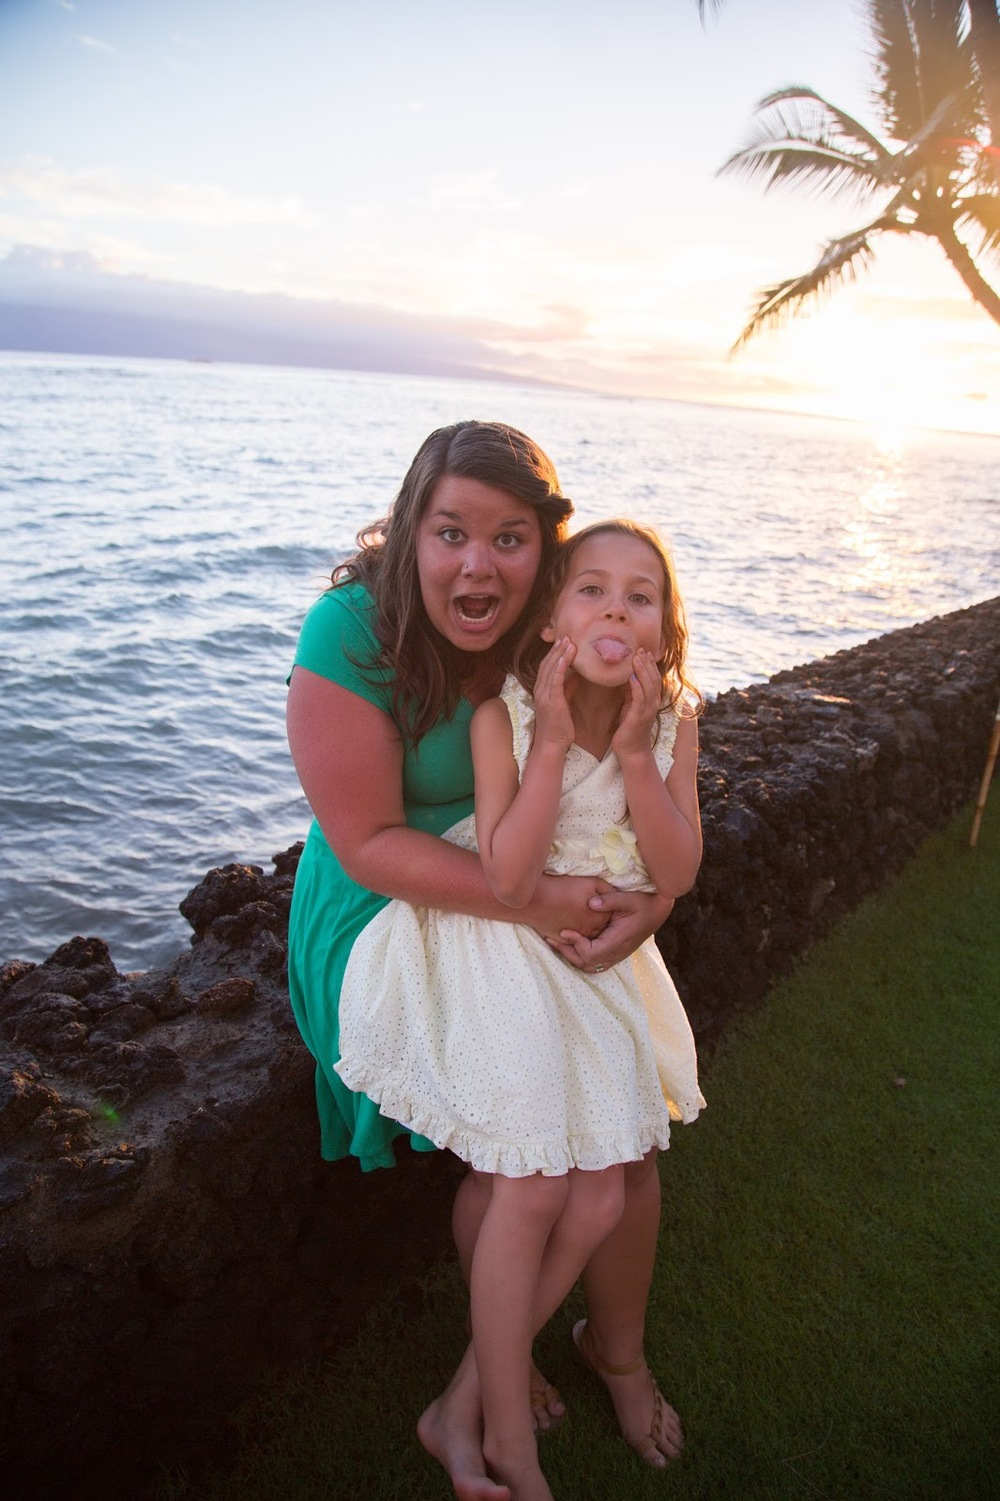 hawaii+family+photos+blog-46.jpg